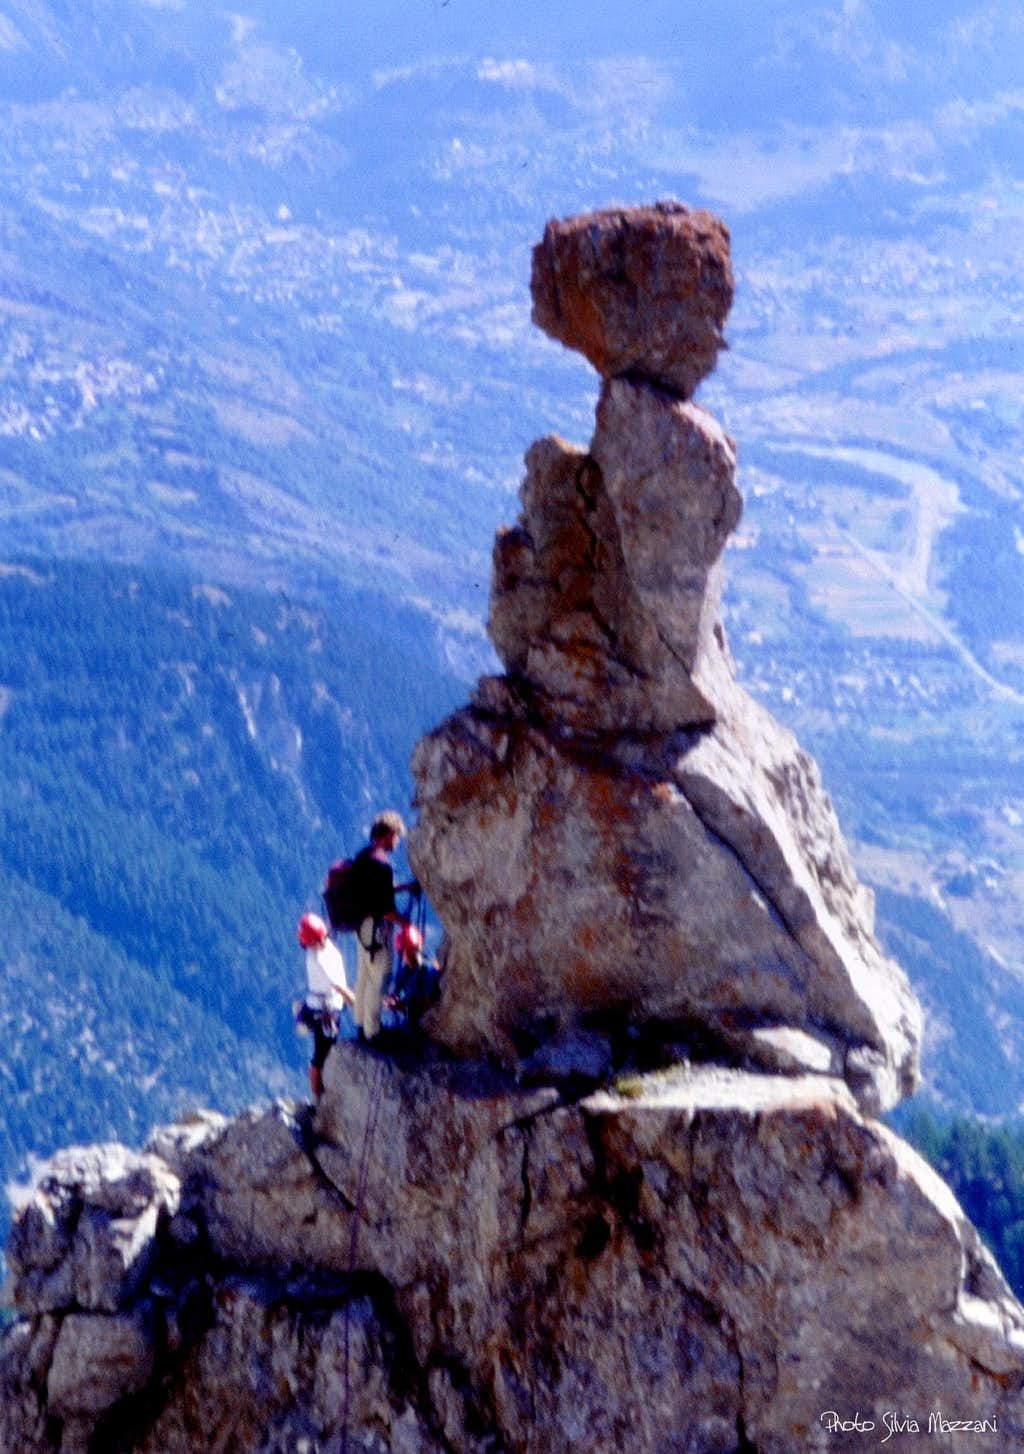 The mushroom at the top of the first tong, Tenailles de Mombrison